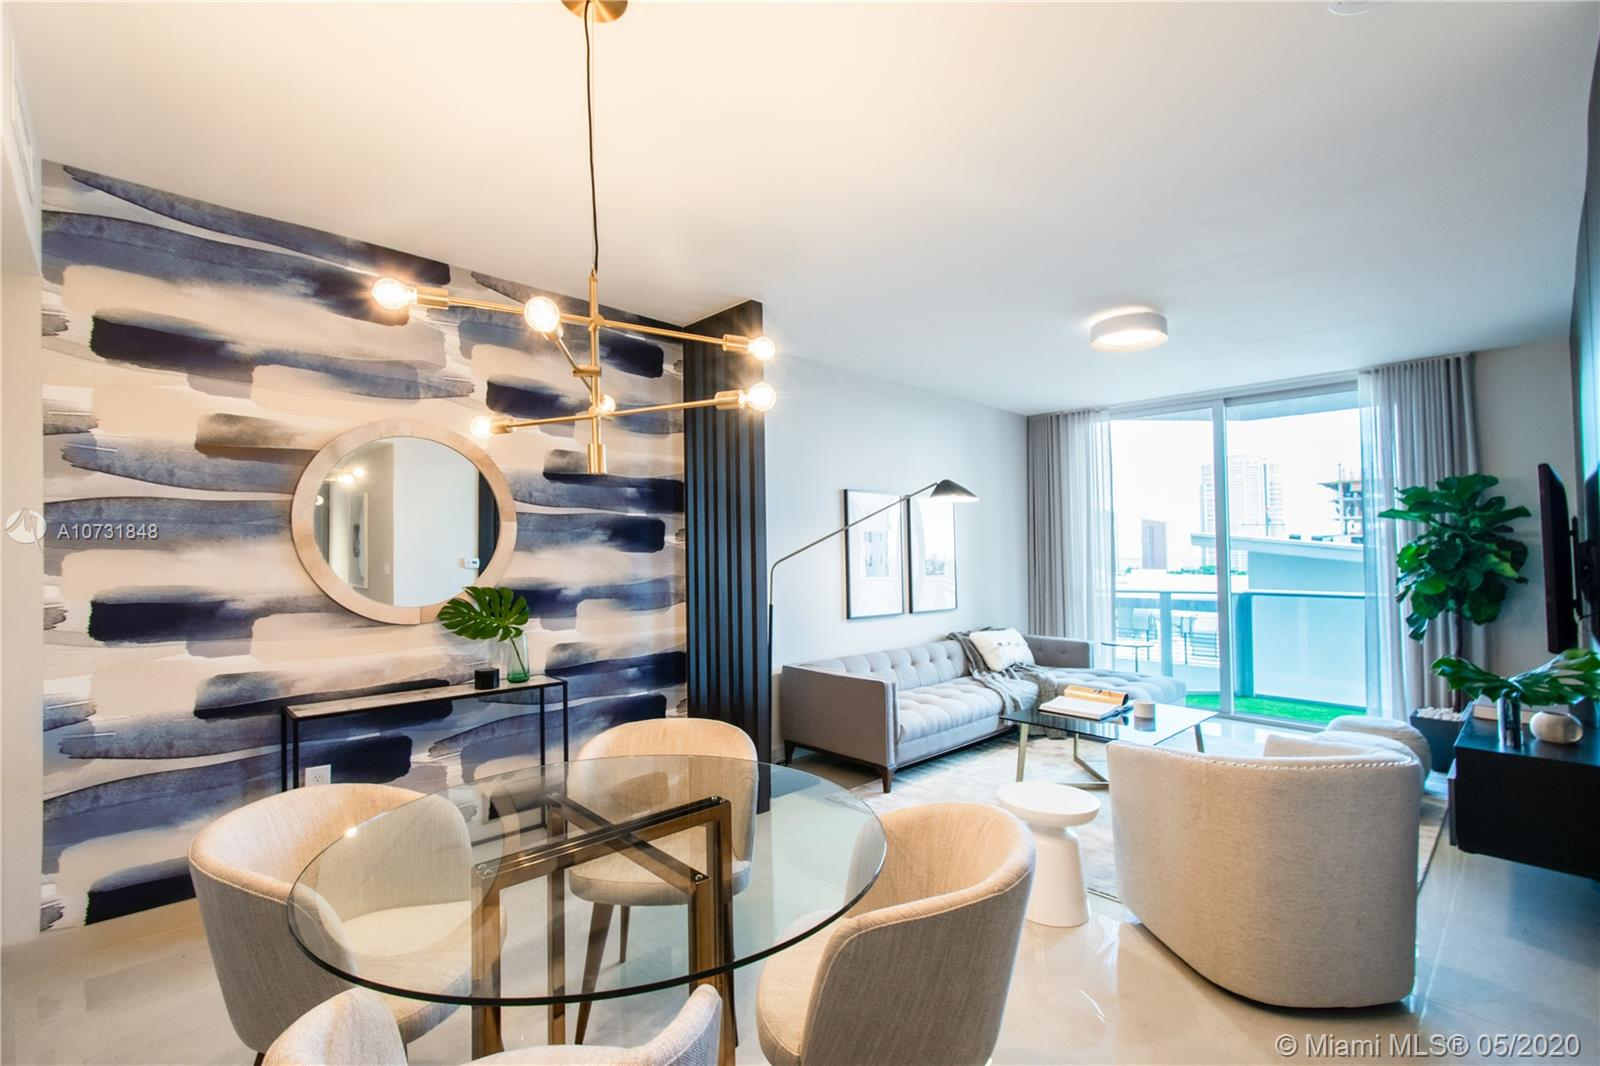 1010 SW 2nd Ave # 1001, Miami, Florida 33130, 2 Bedrooms Bedrooms, ,2 BathroomsBathrooms,Residential,For Sale,1010 SW 2nd Ave # 1001,A10731848